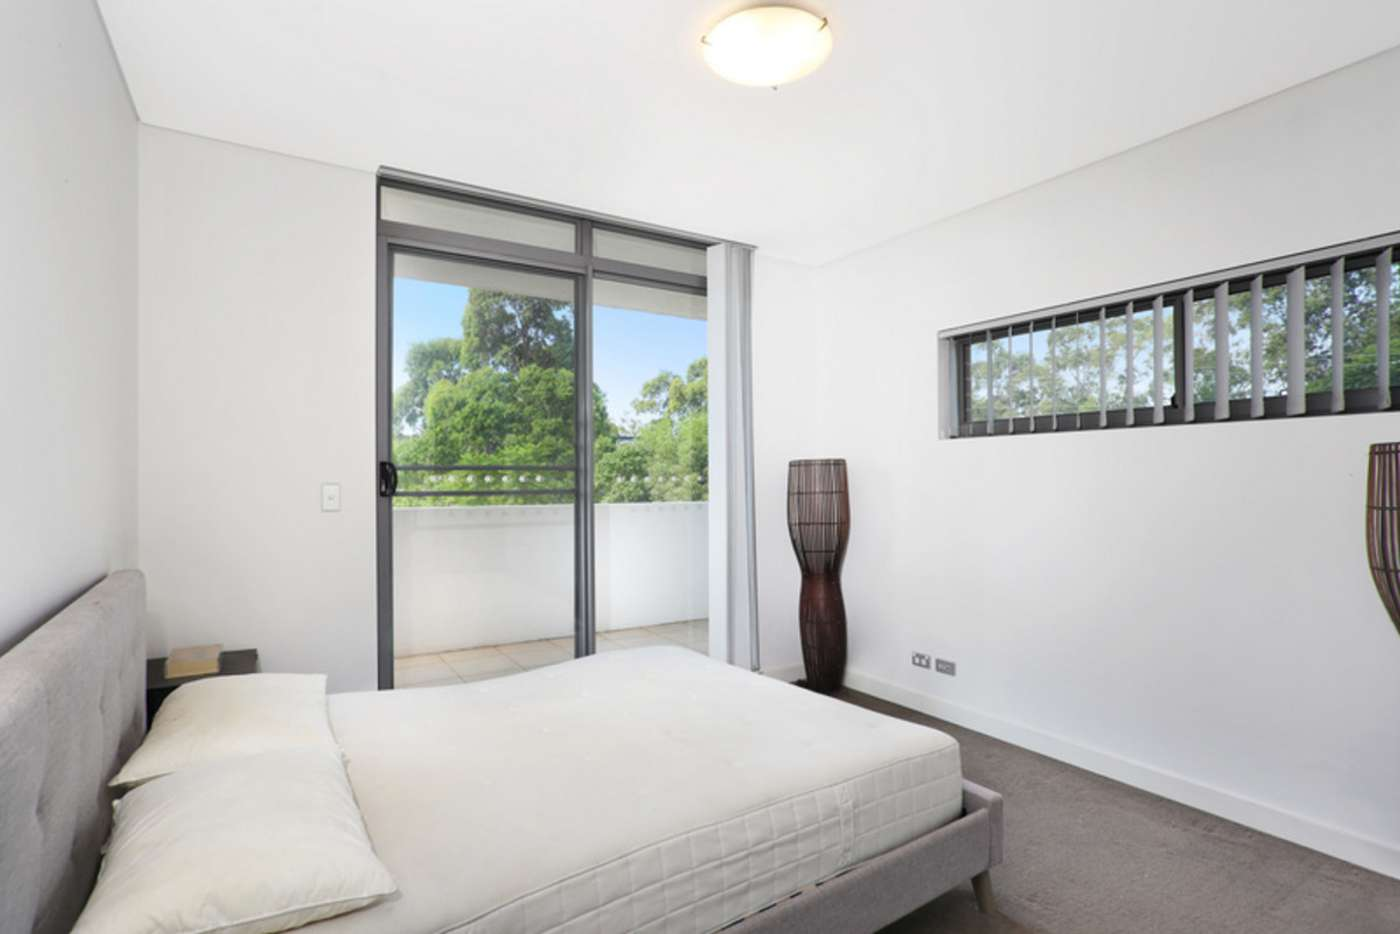 Fifth view of Homely apartment listing, 36/28 Brickworks Drive, Holroyd NSW 2142